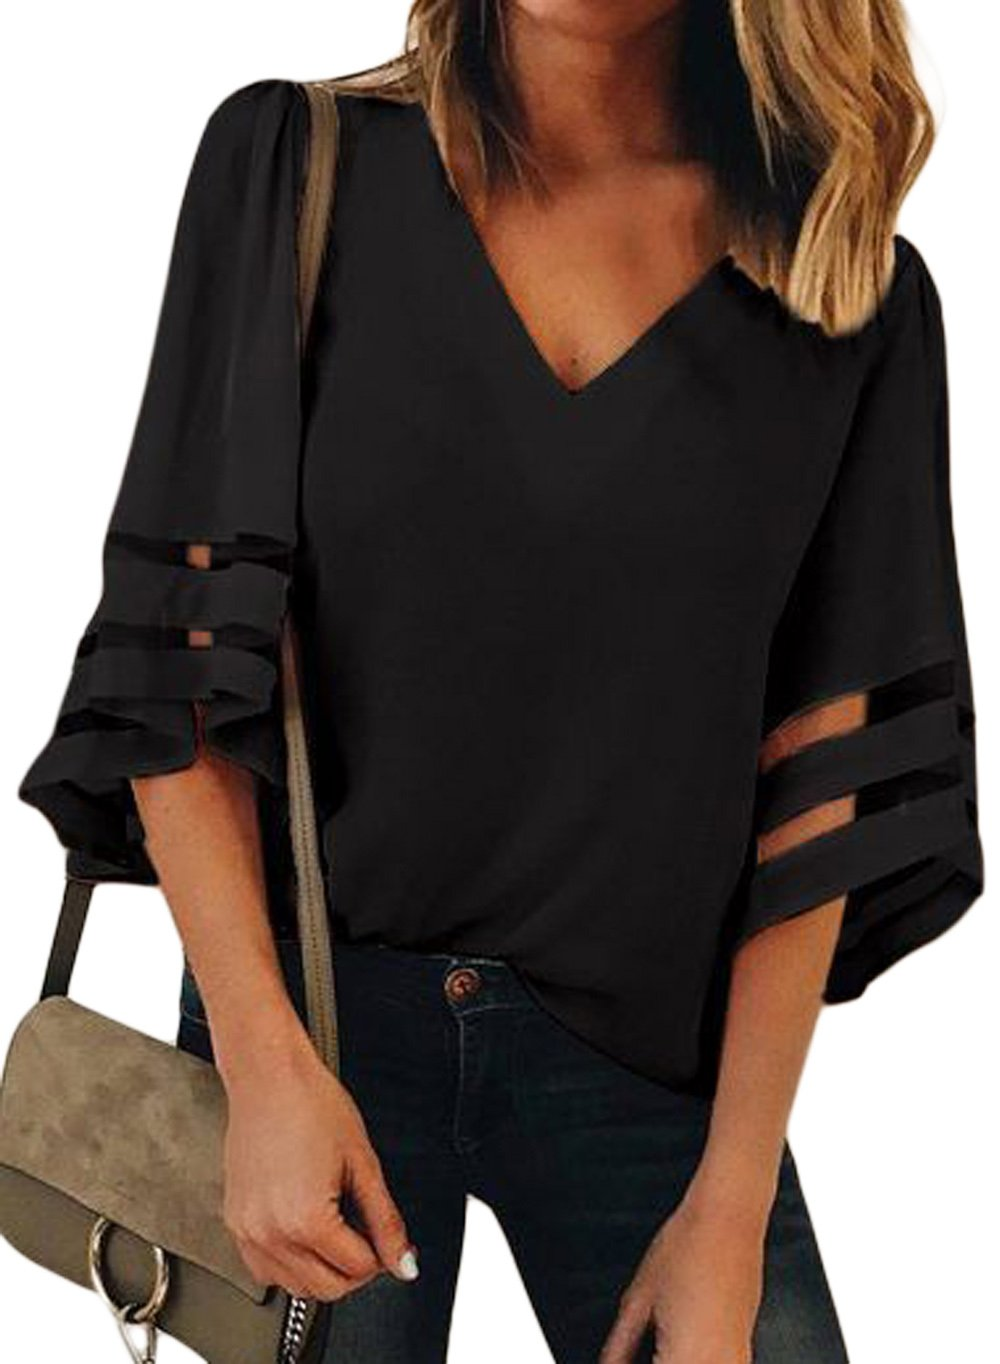 Women 3/4 Bell Sleeve Tops Casual V Neck Loose Blouse Summer Autumn Shirt(Black,S)